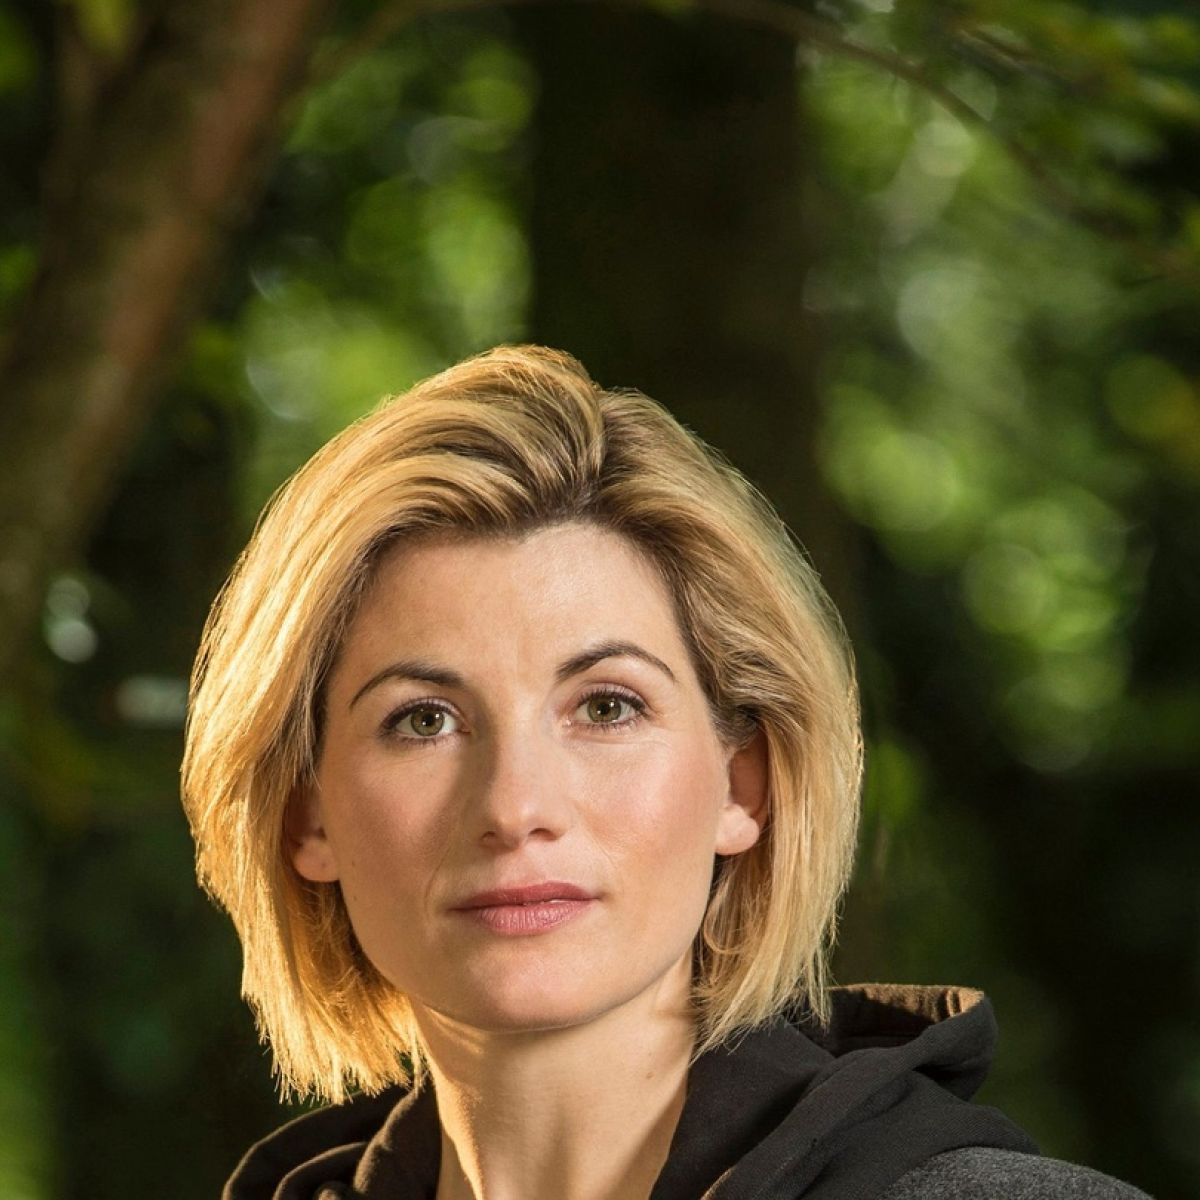 A Female Doctor Who Is Not Progress